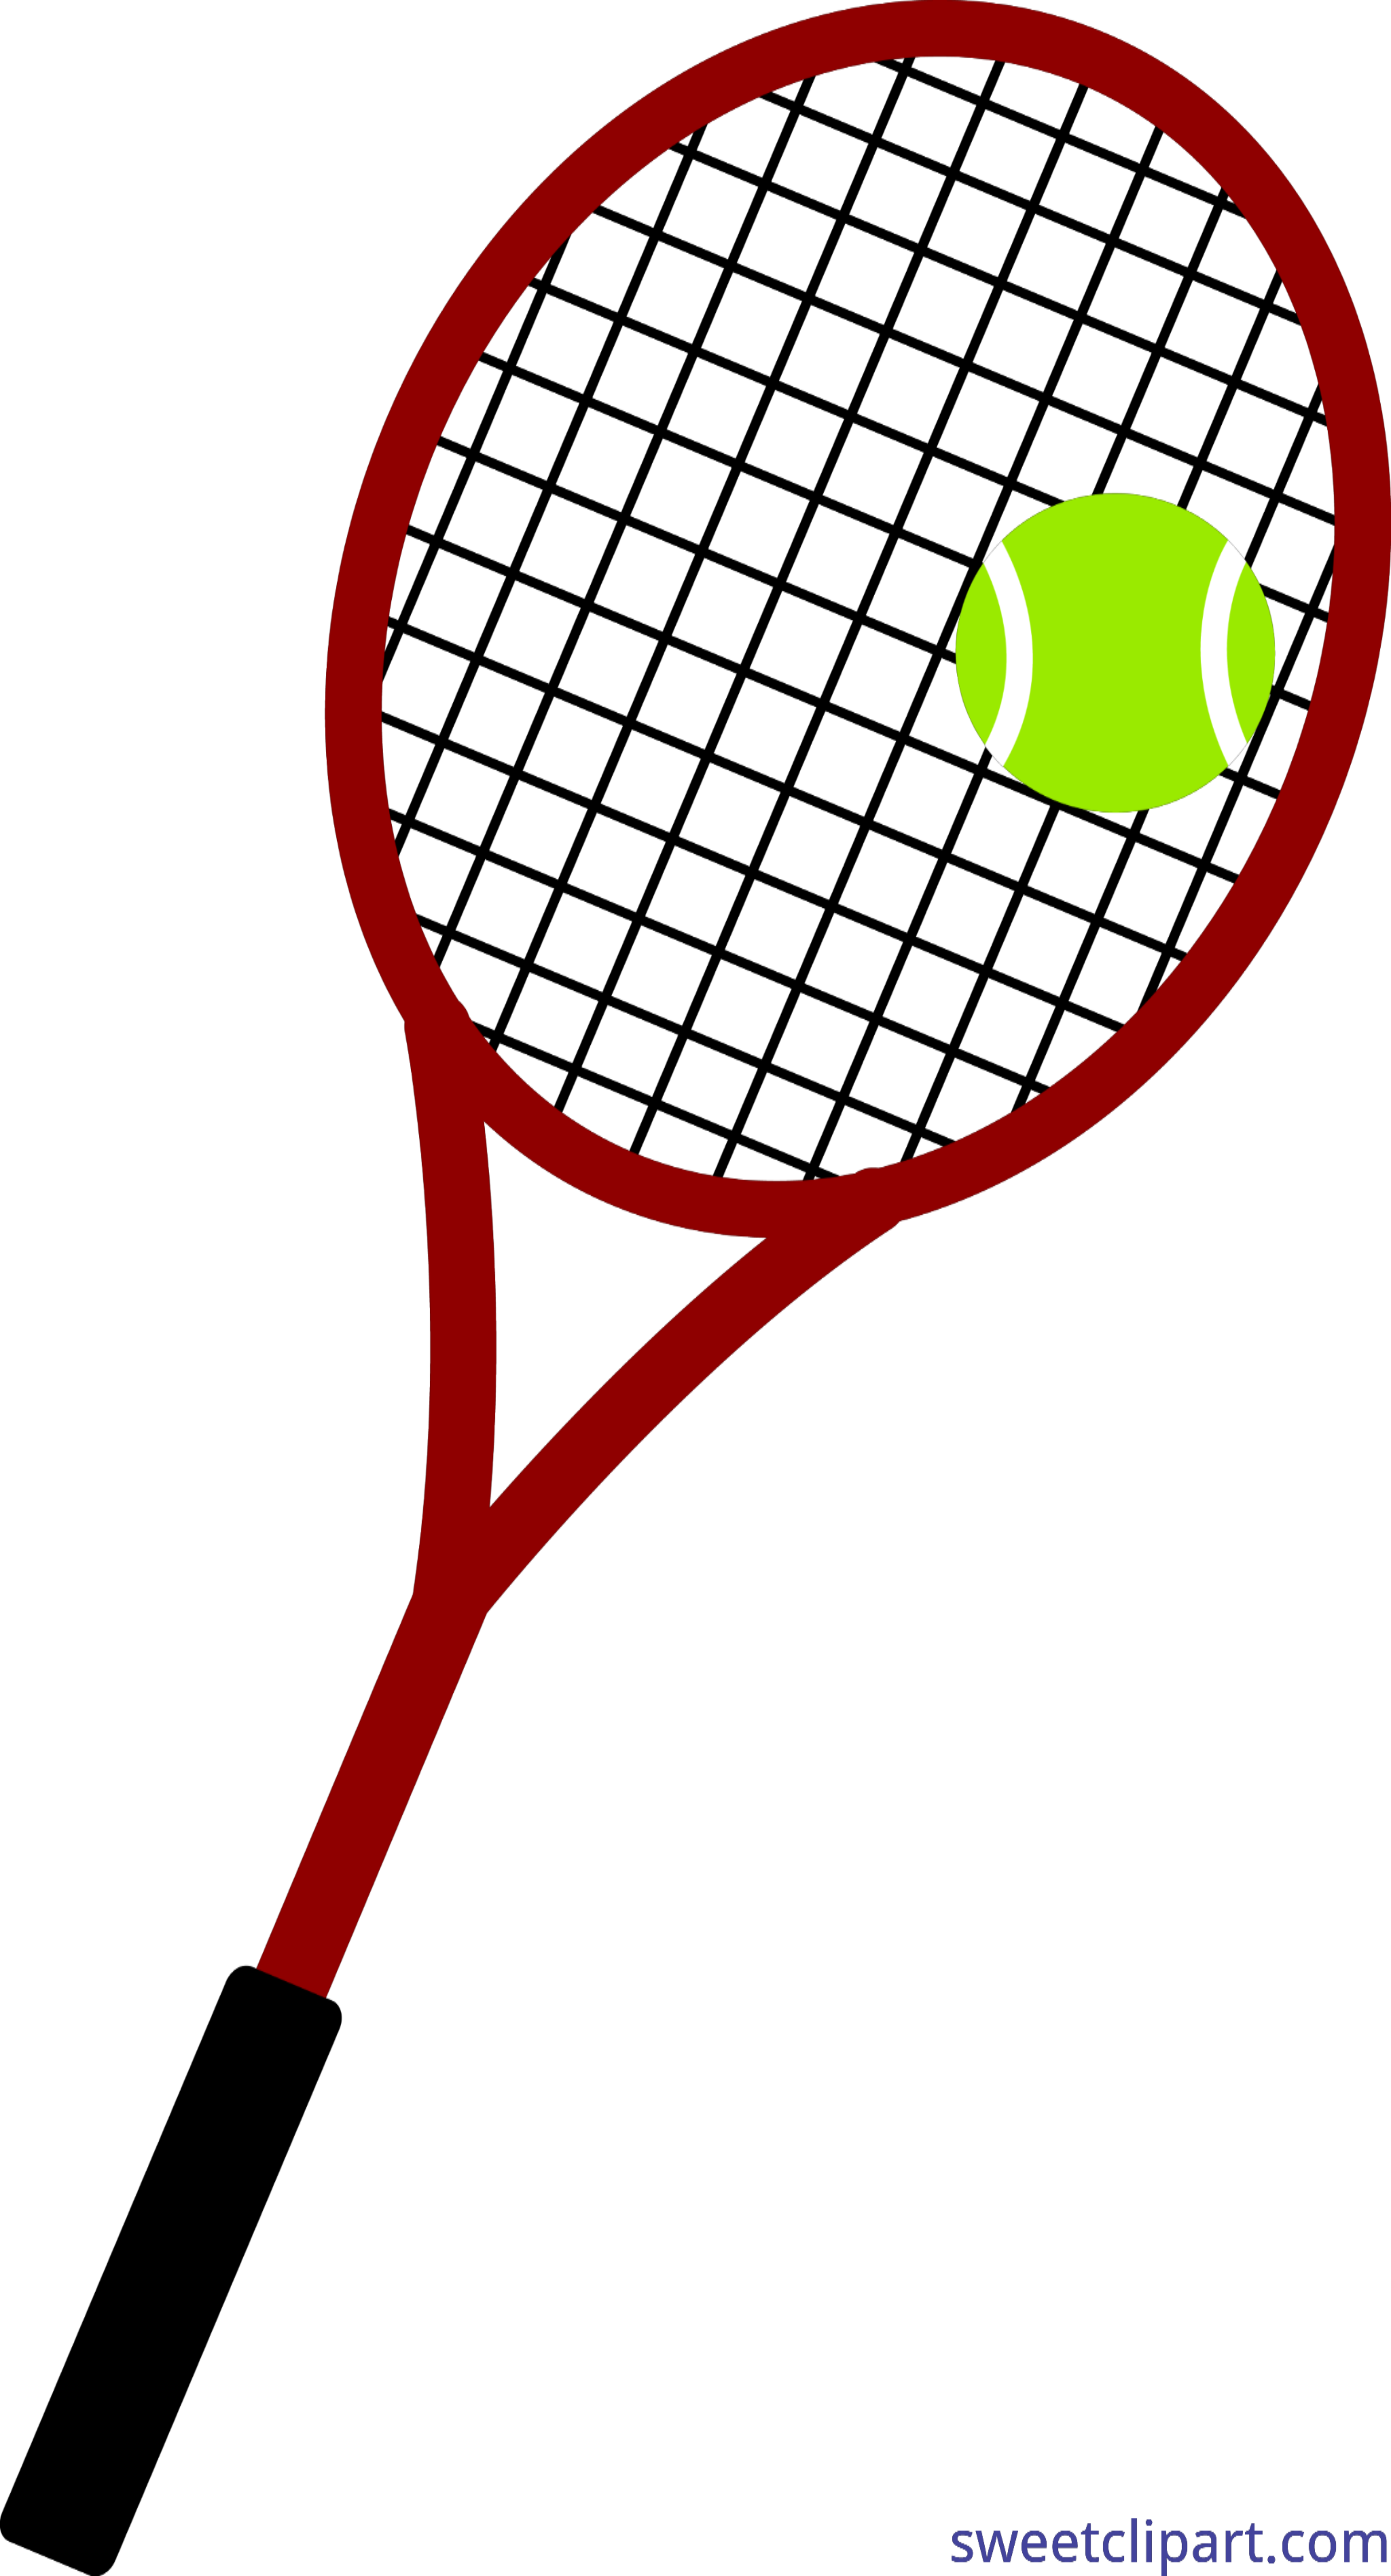 Racket clipart red tennis. Ball and clip art